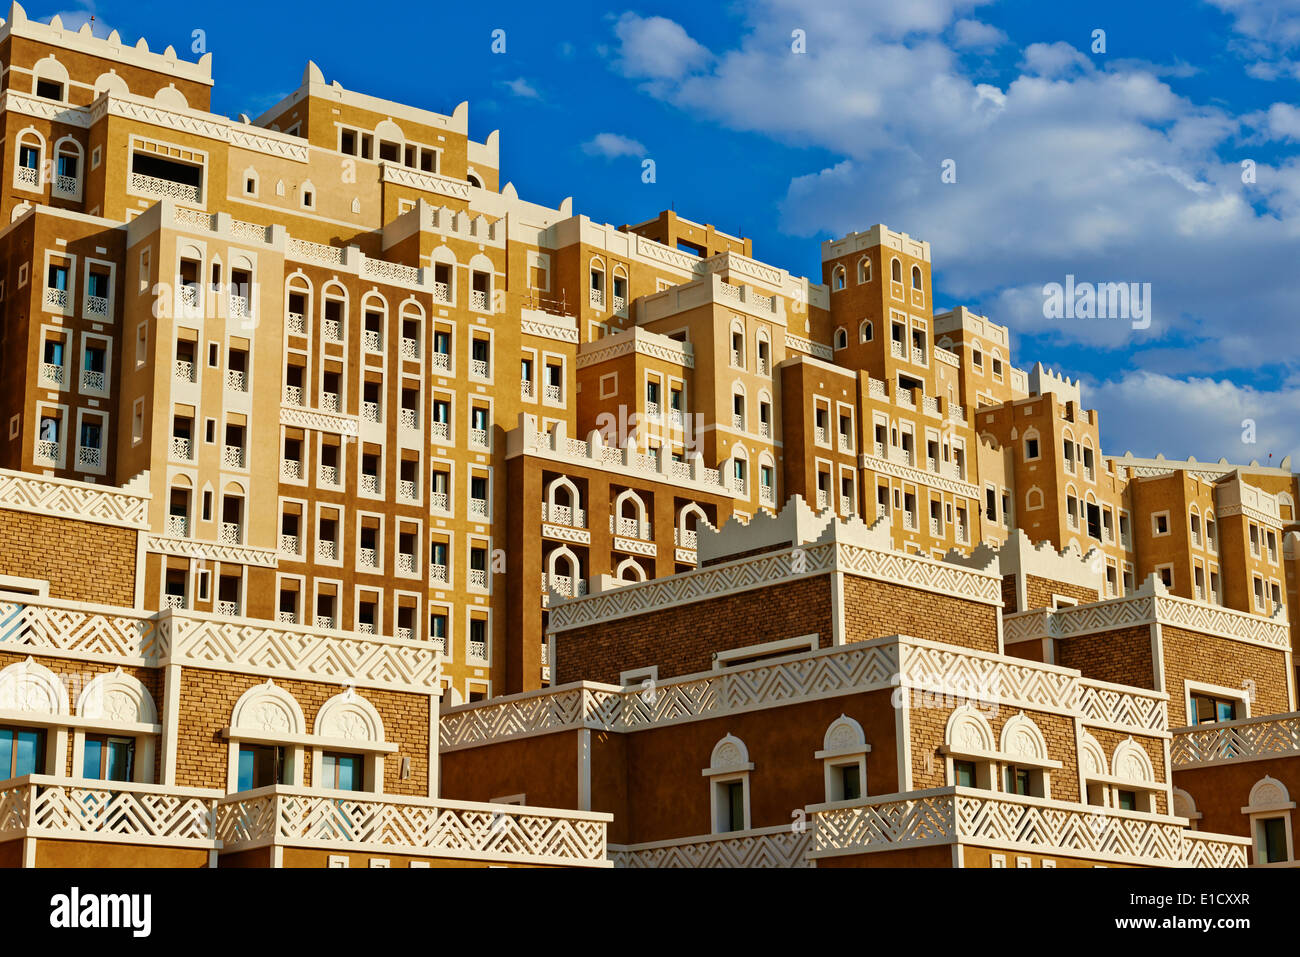 United Arab Emirates, Dubai, the Palm Jumeirah, building with Yemen style of architecture - Stock Image